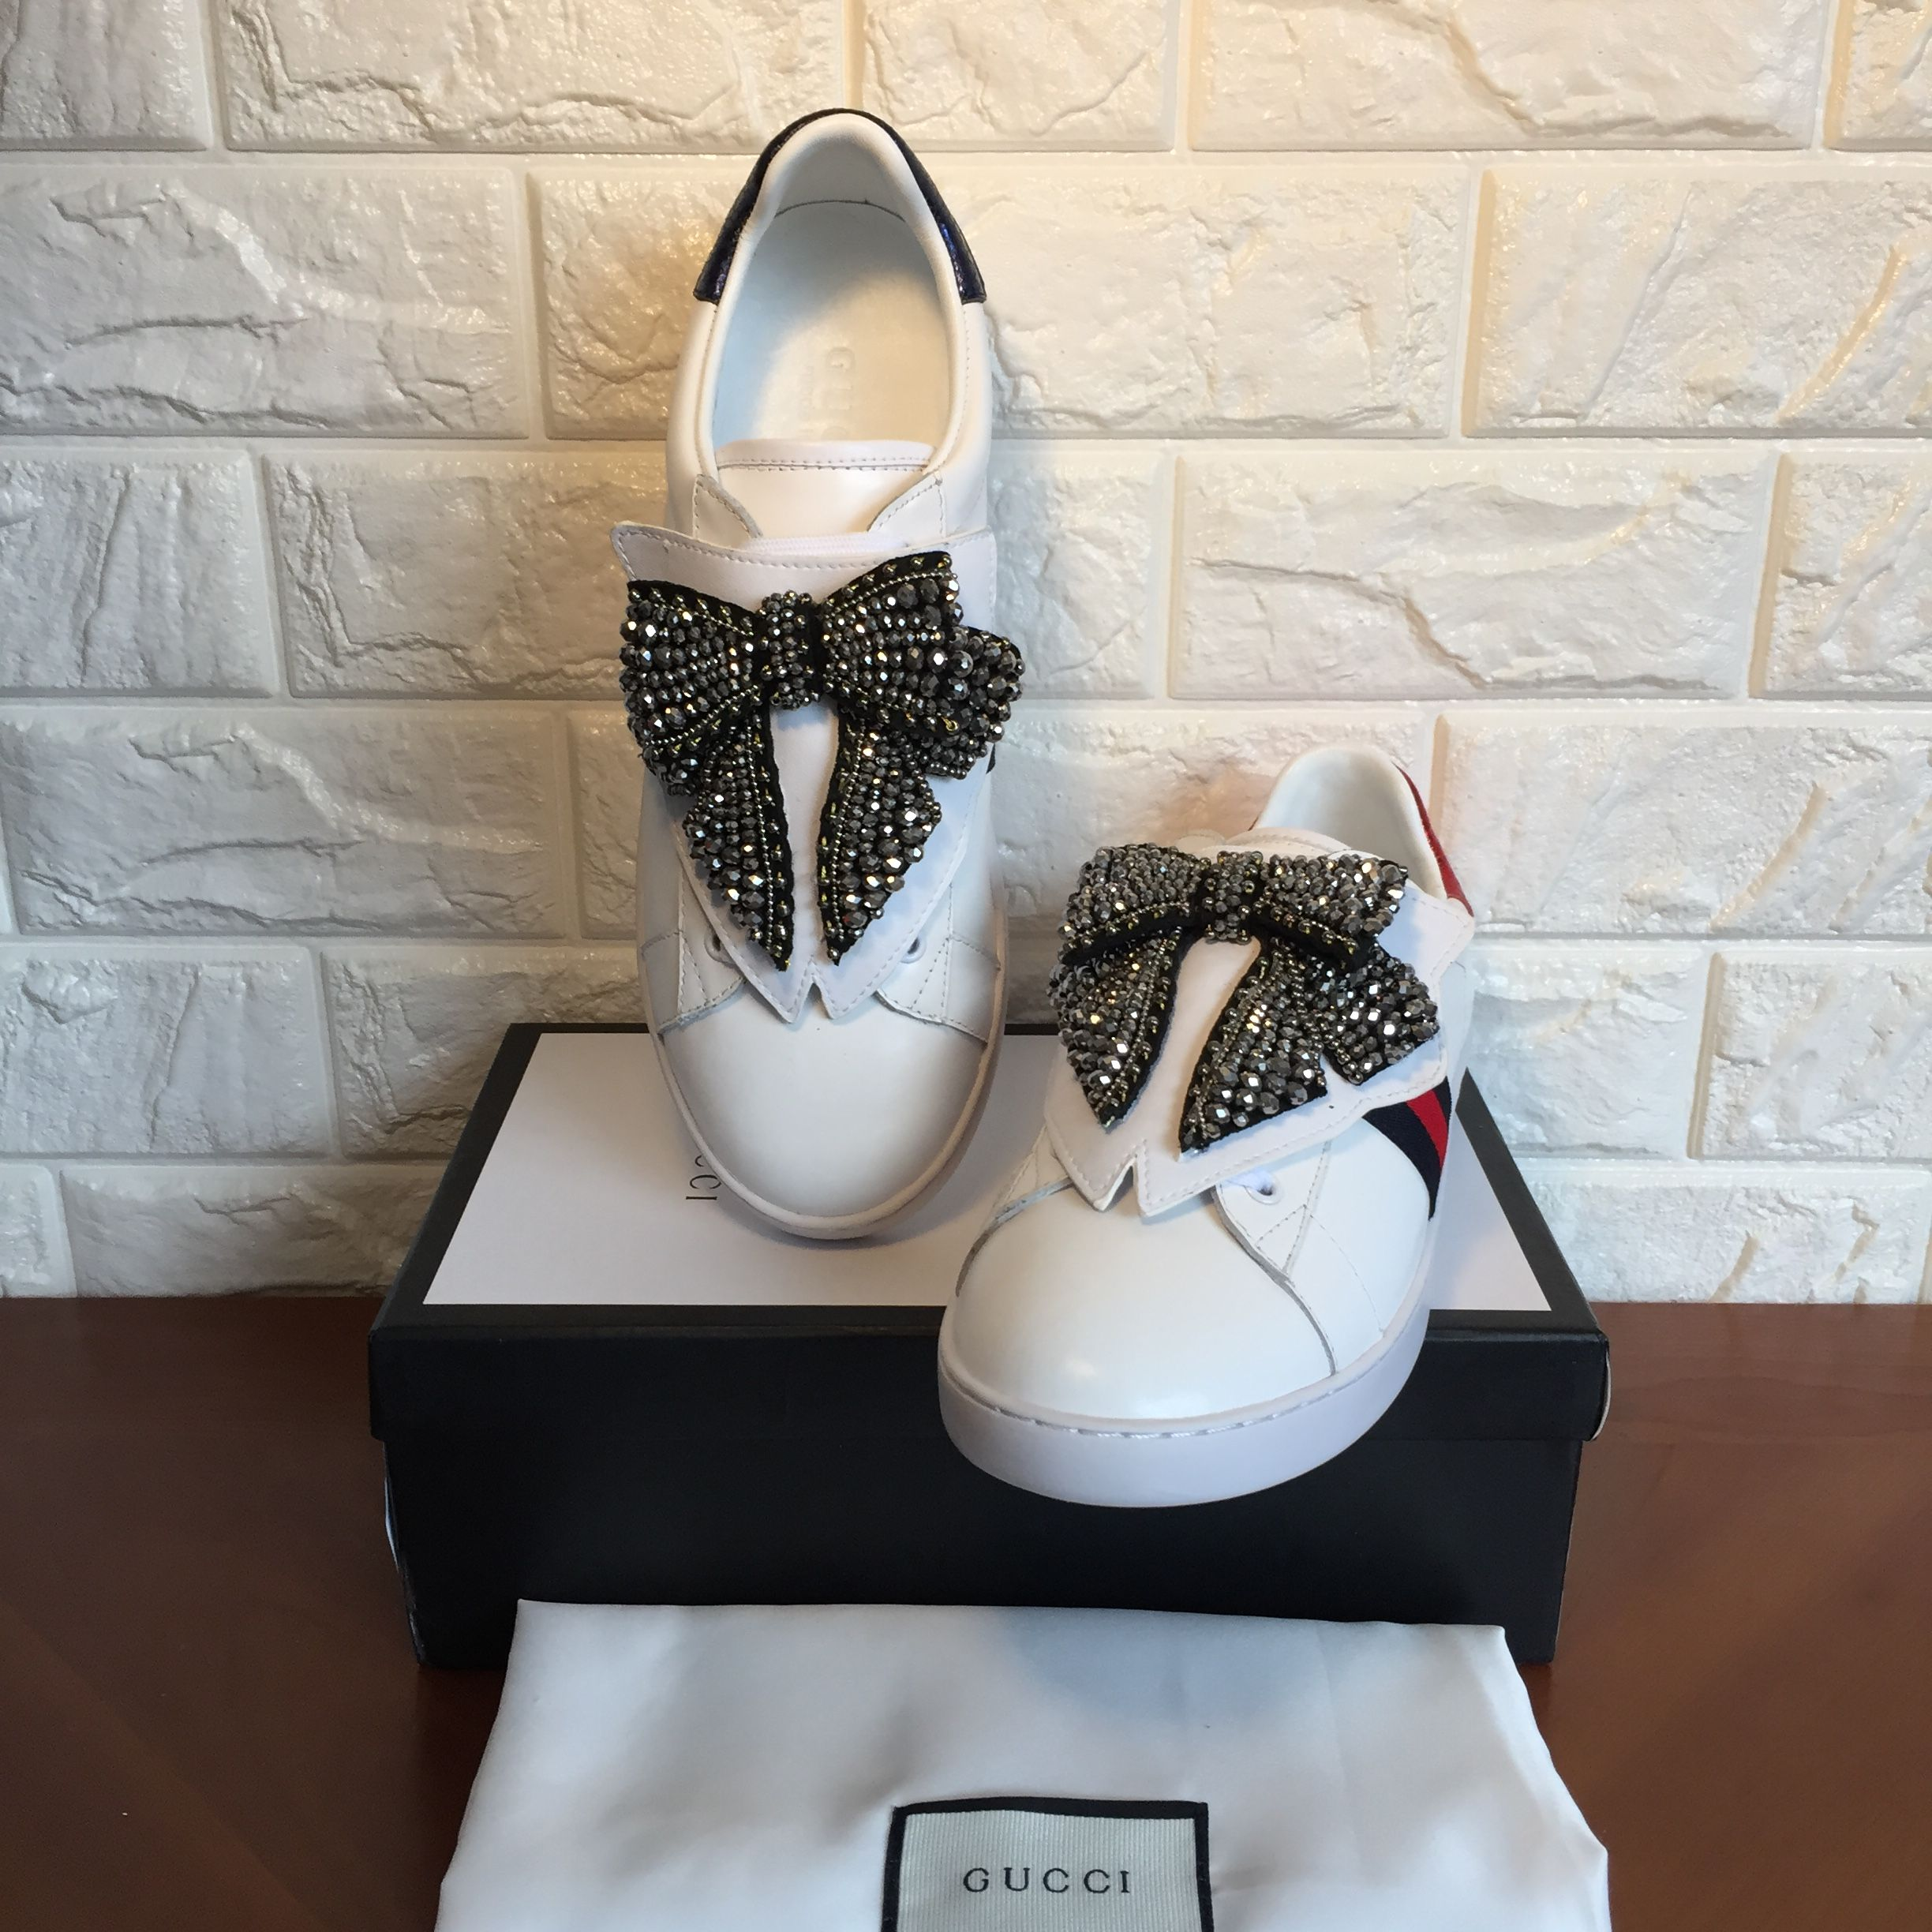 Gucci woman shoes bow tie tag sneakers